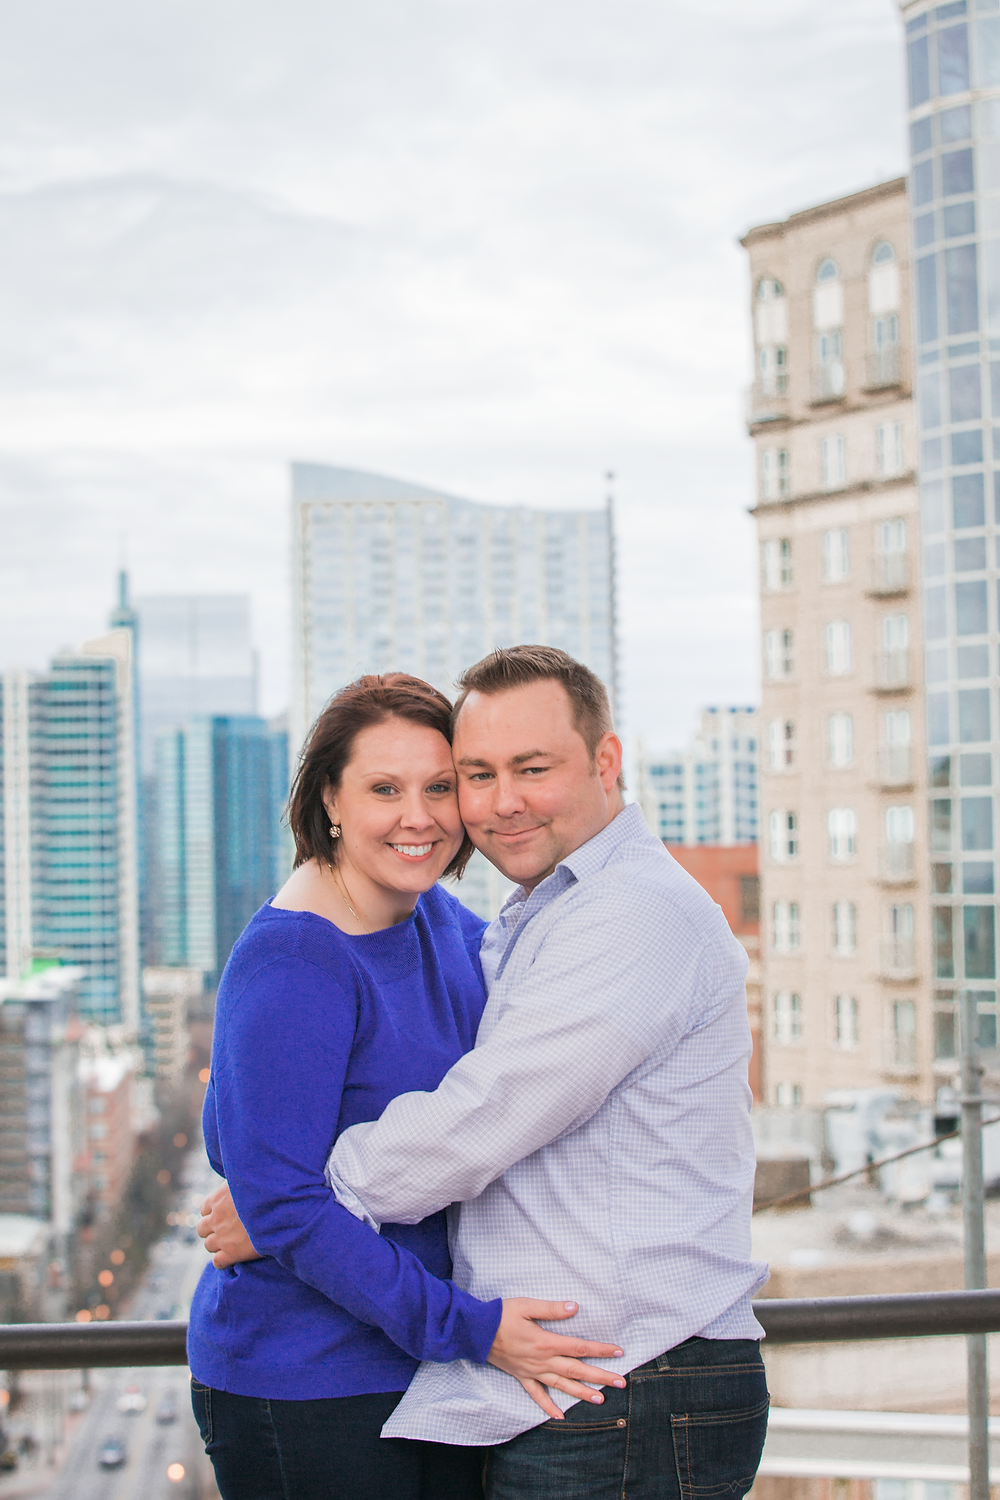 Atlanta engagement session on rooftop